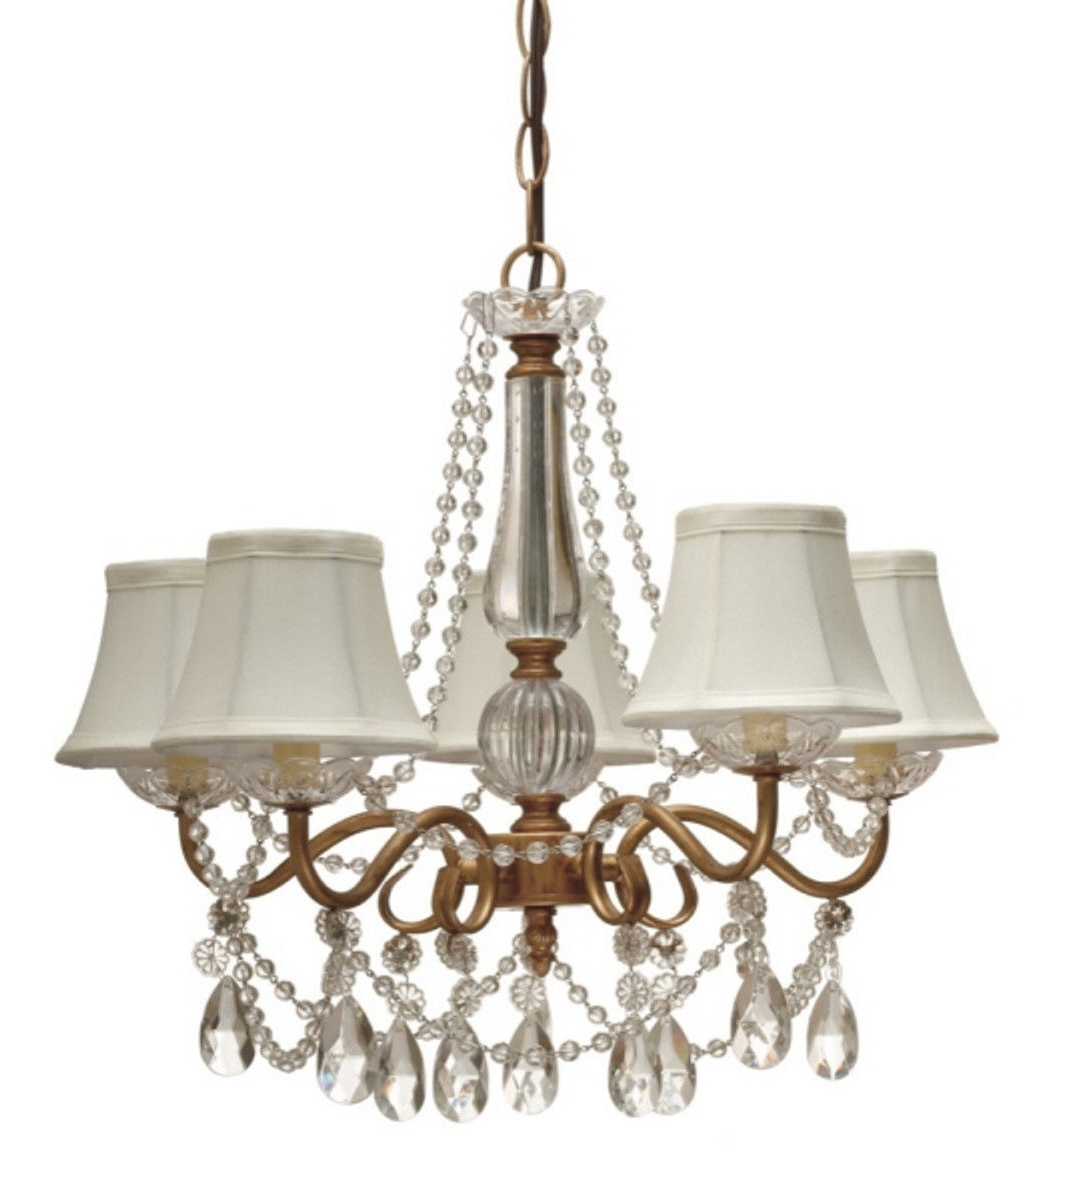 Lamp Shade Pro In Best And Newest Lampshade Chandeliers (View 5 of 15)